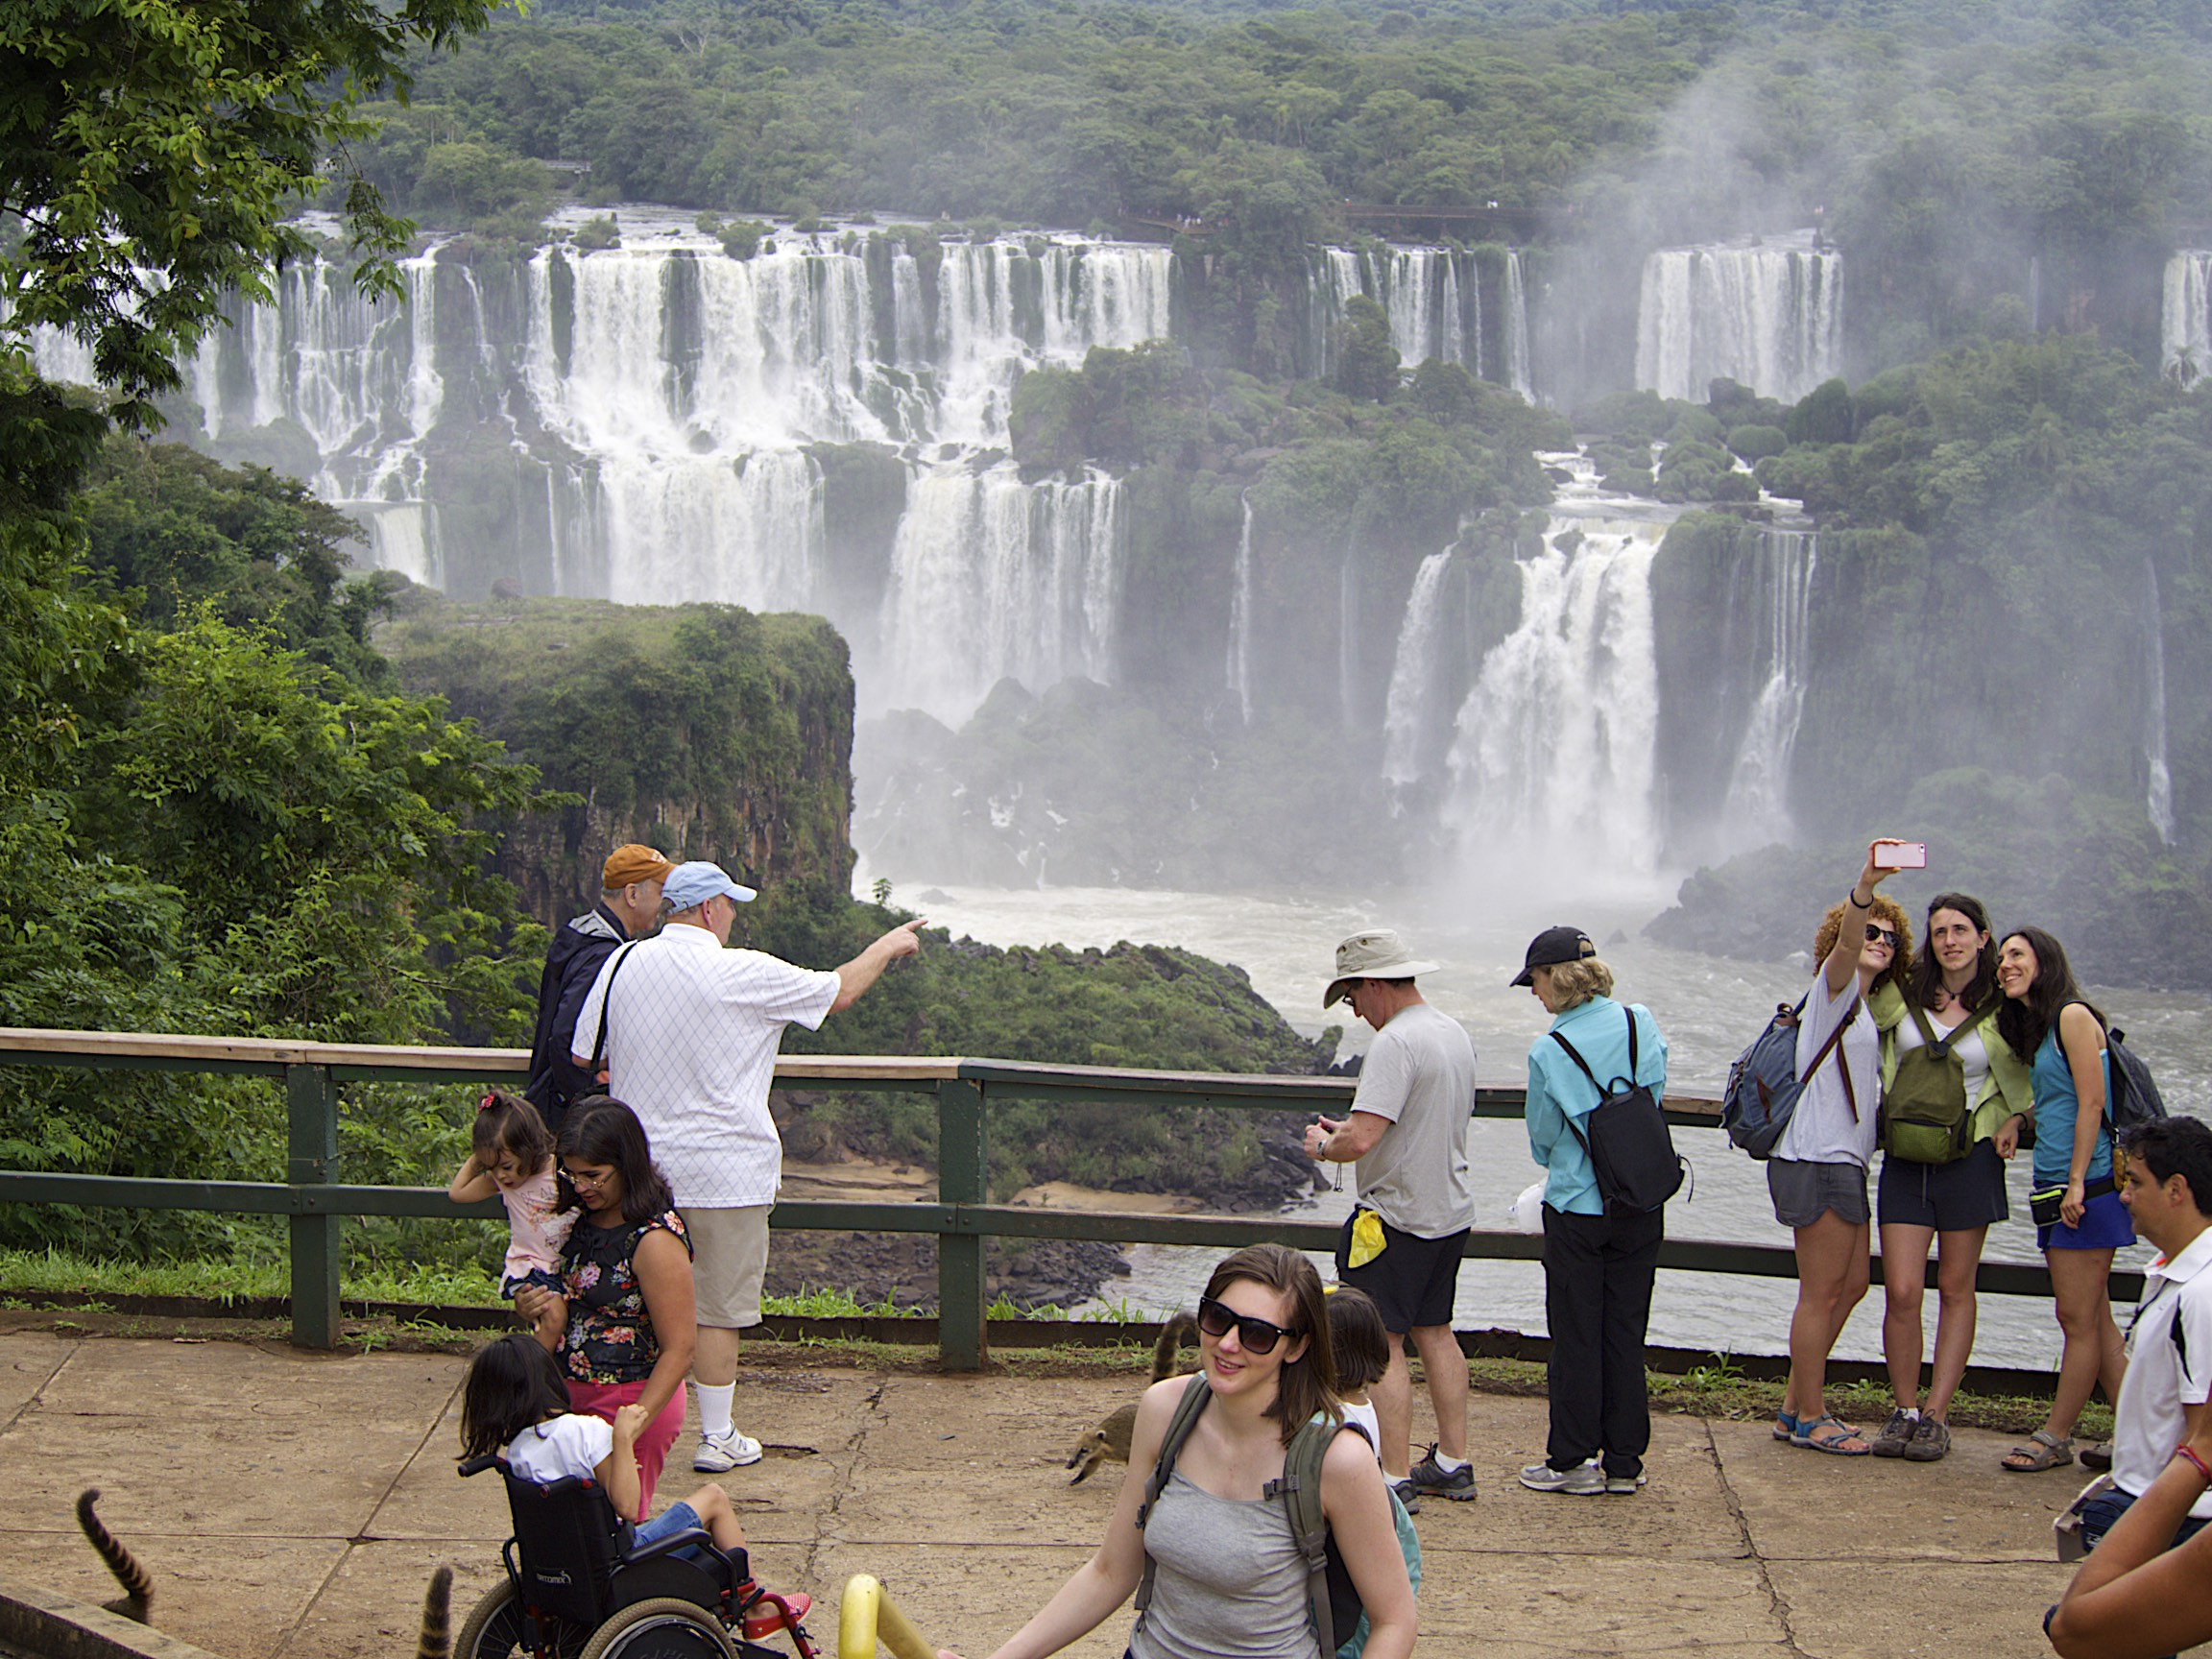 A first glimpse of the Iguacu Falls (Brazil side)